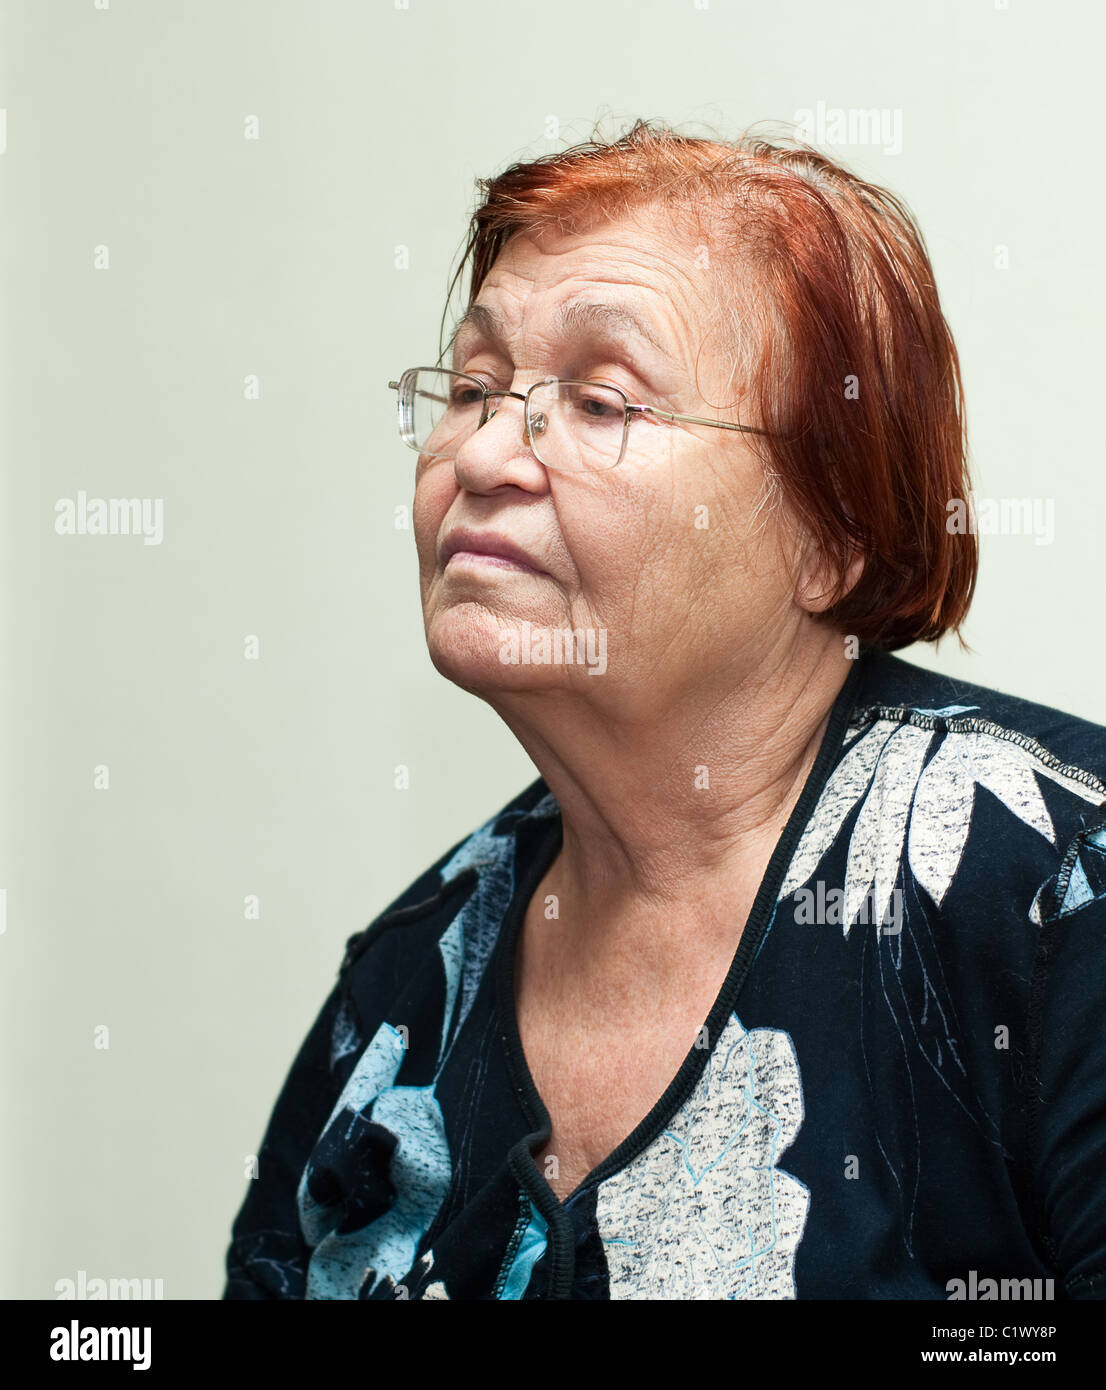 cb6c60a0d3 Old Russian Woman Stock Photos   Old Russian Woman Stock Images - Alamy